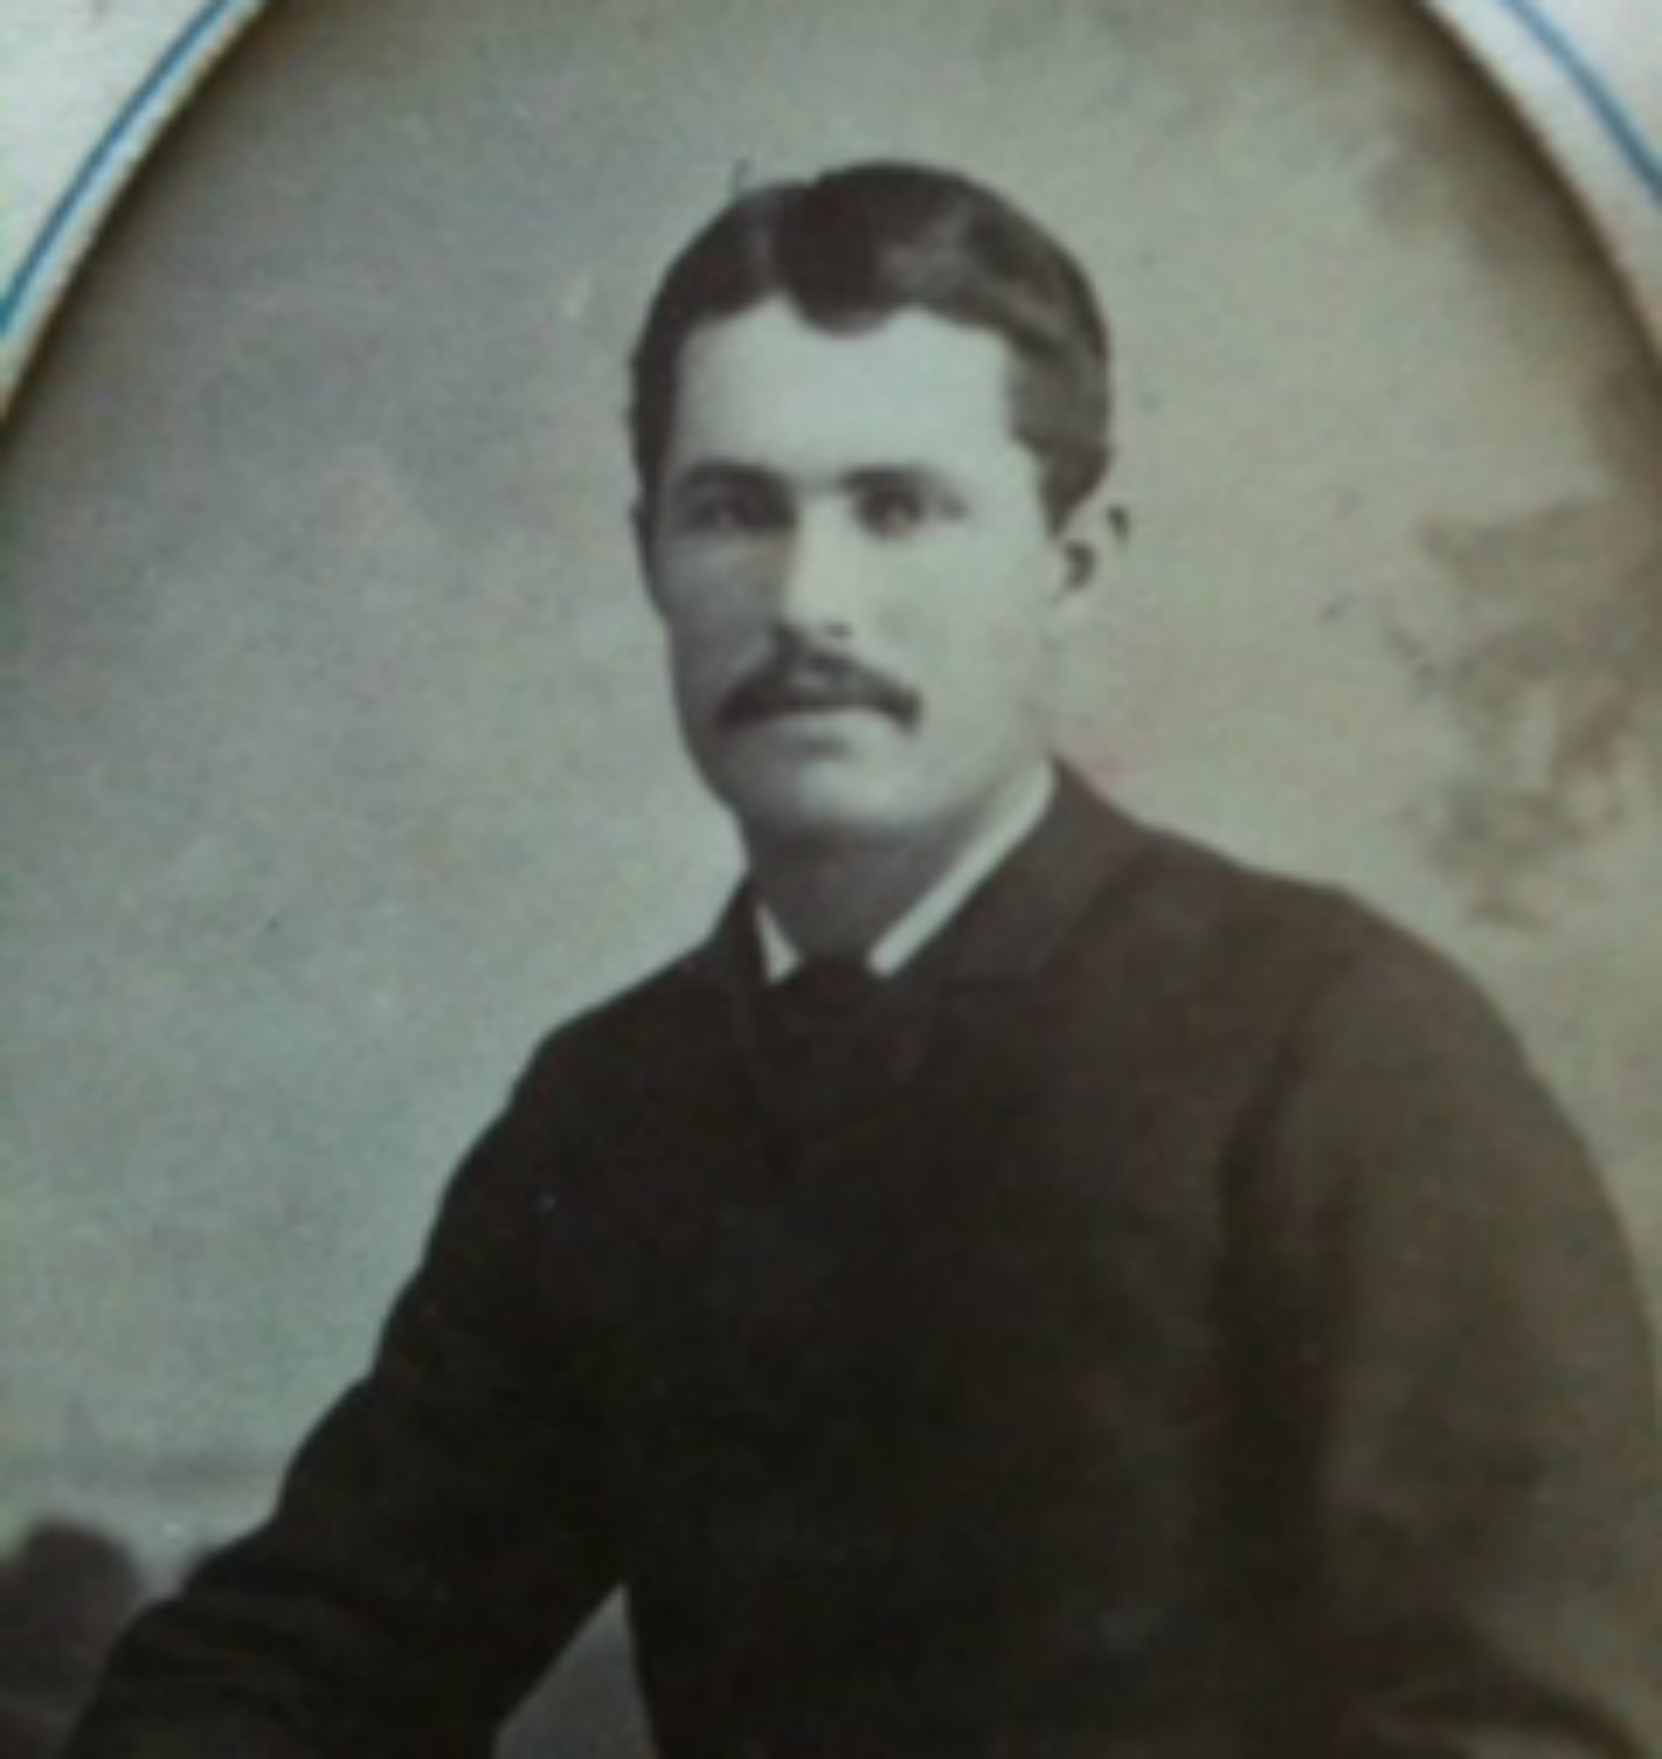 Isaac Newton Van Norman, circa 1890 (photo courtesy of J. Wright. Private collection, used with permission)